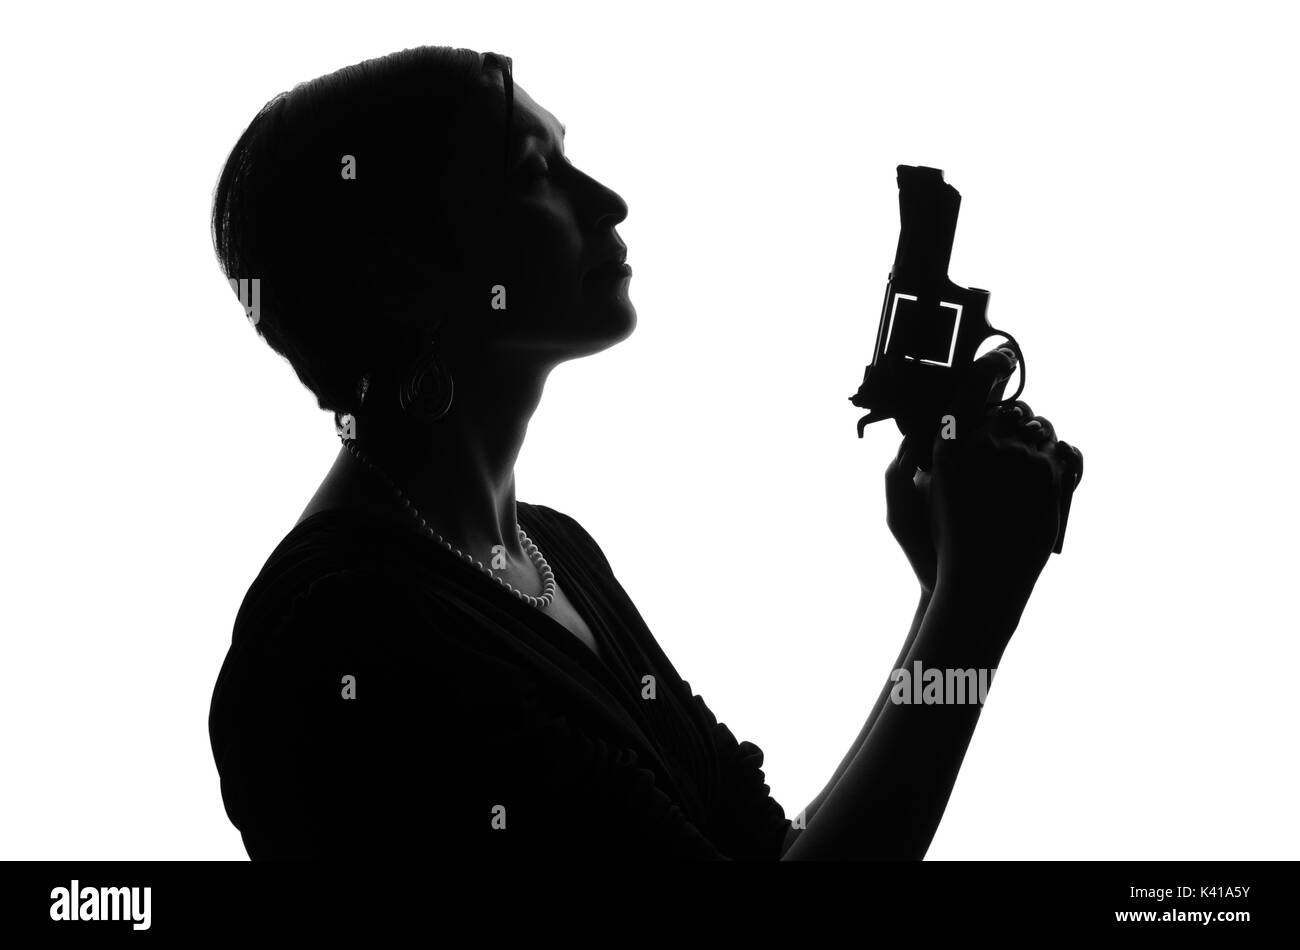 Silhouette of woman private detective with a gun in her hand. Gangster looks like mafiosi and stay side to camera. She wears a dress. Police criminal  - Stock Image